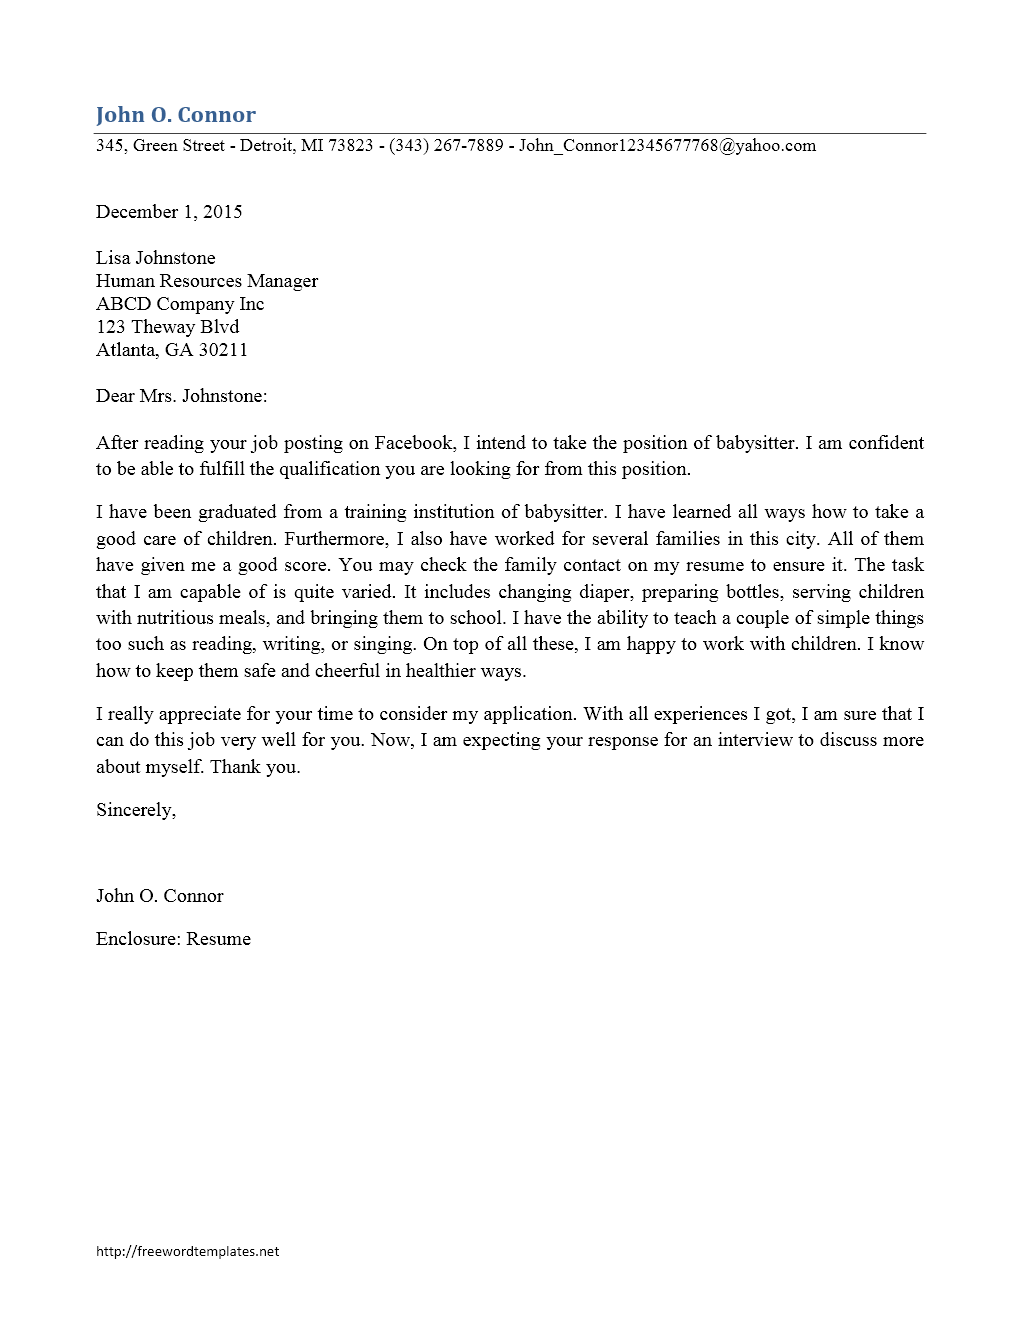 babysitter cover letter - Sample Cover Letter For Babysitting Job